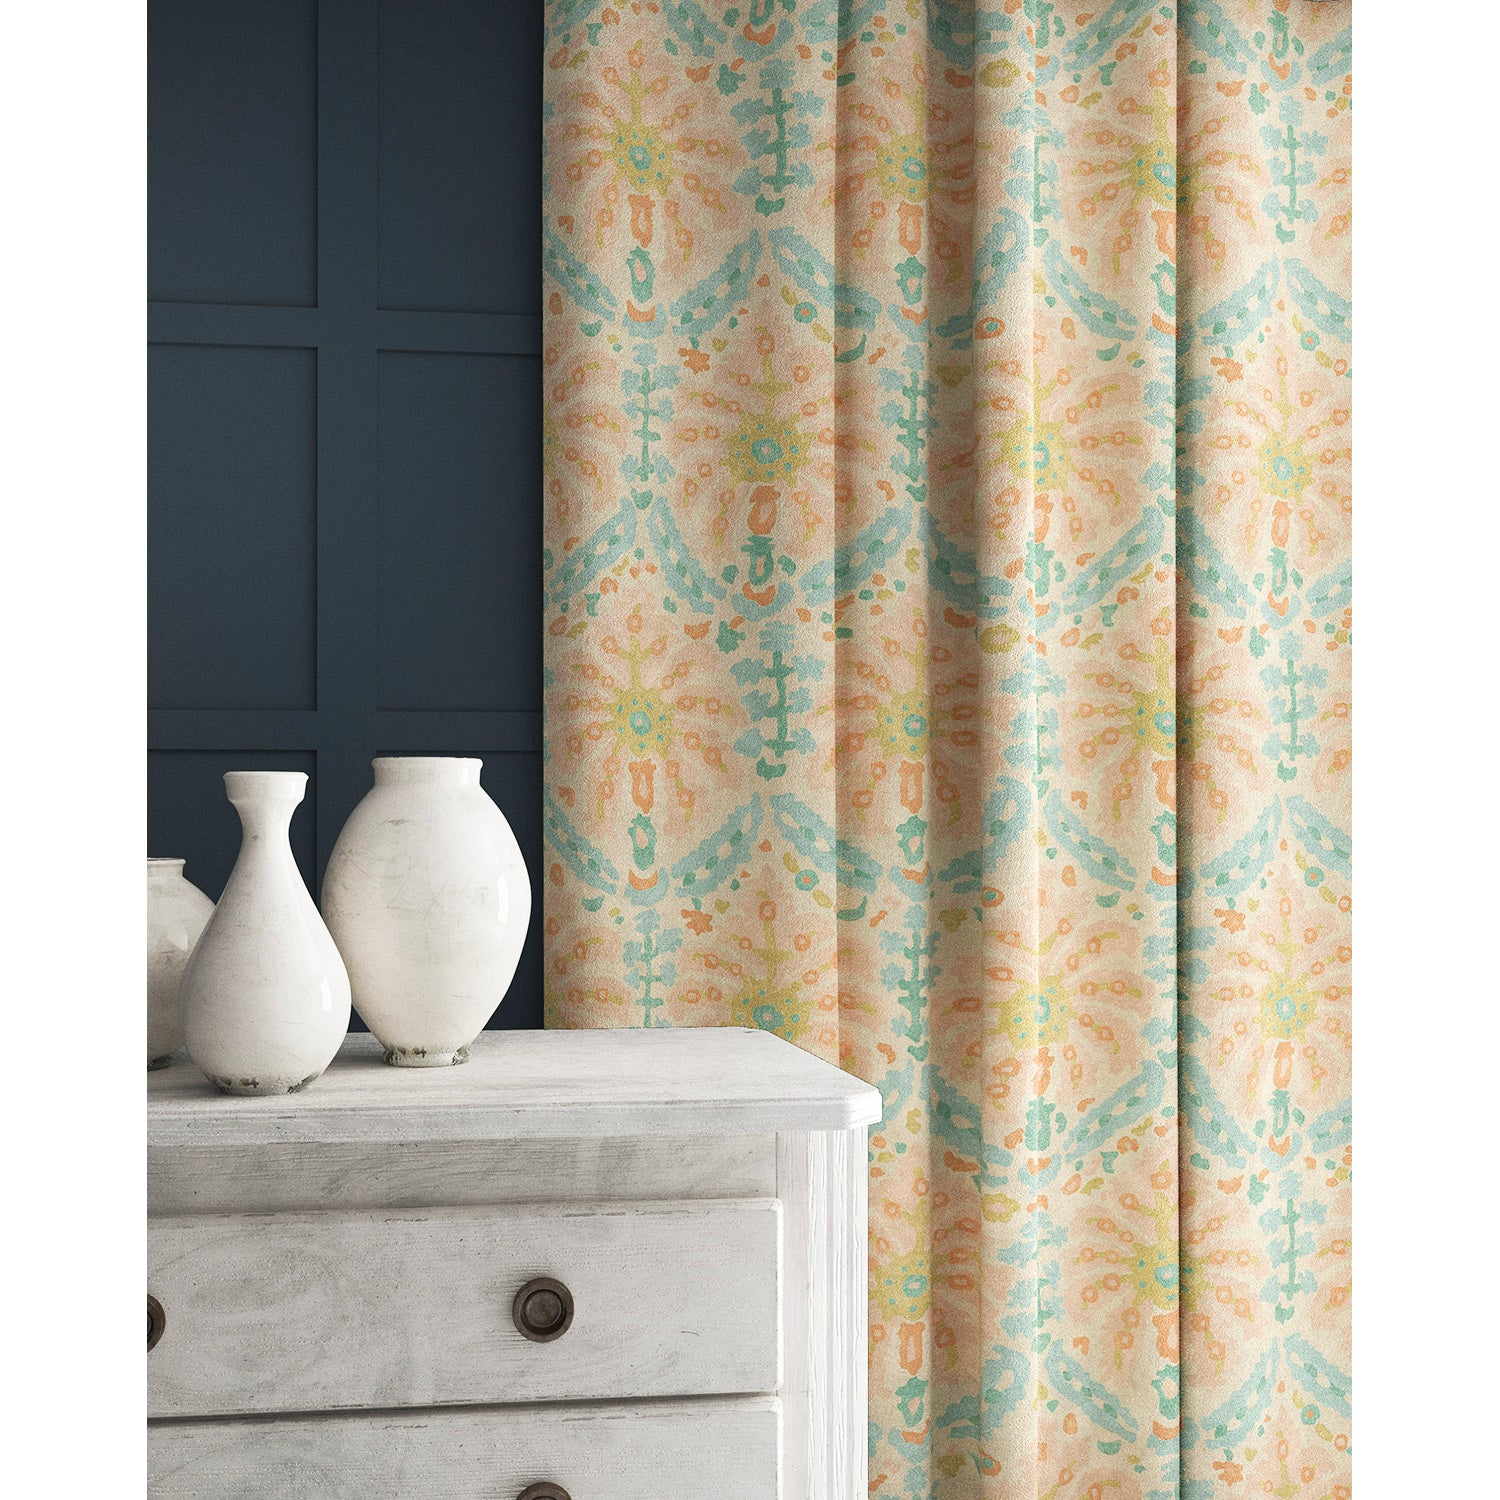 Curtain in a pastel blue and pink wool fabric with abstract palm design